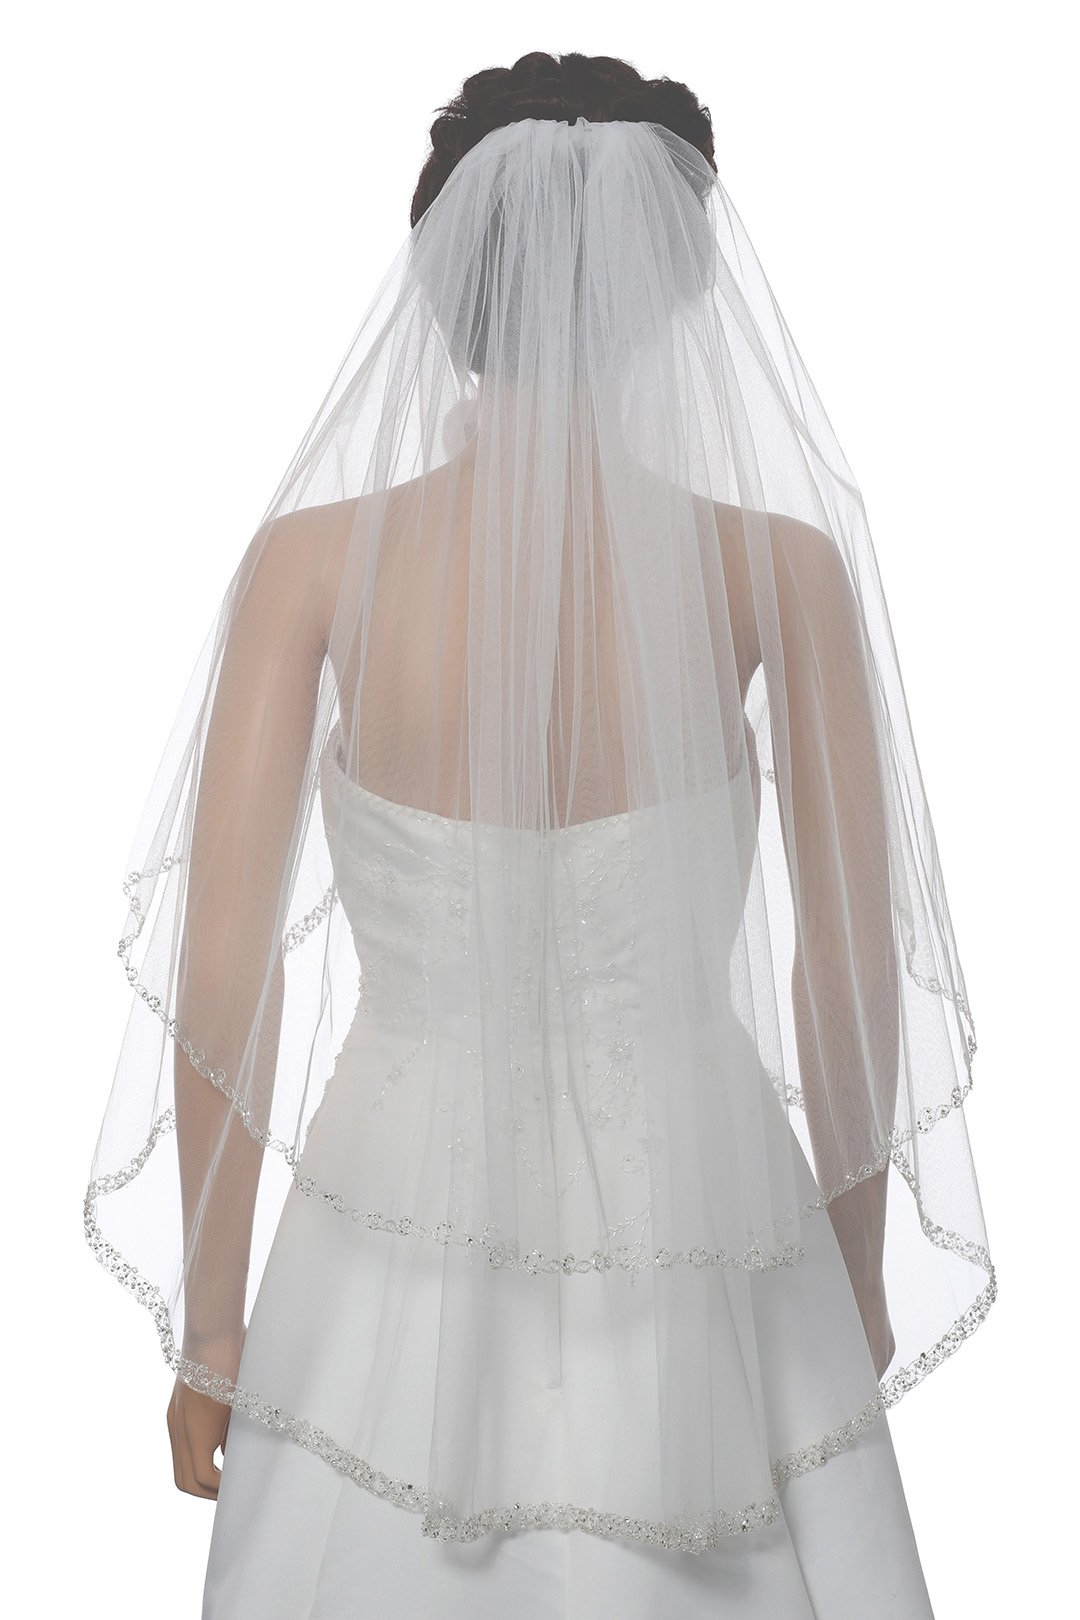 2T 2 Tier Dual Edge Embroided Pearl Crystal Beaded Veil - Ivory Fingertip Length 36'' V453